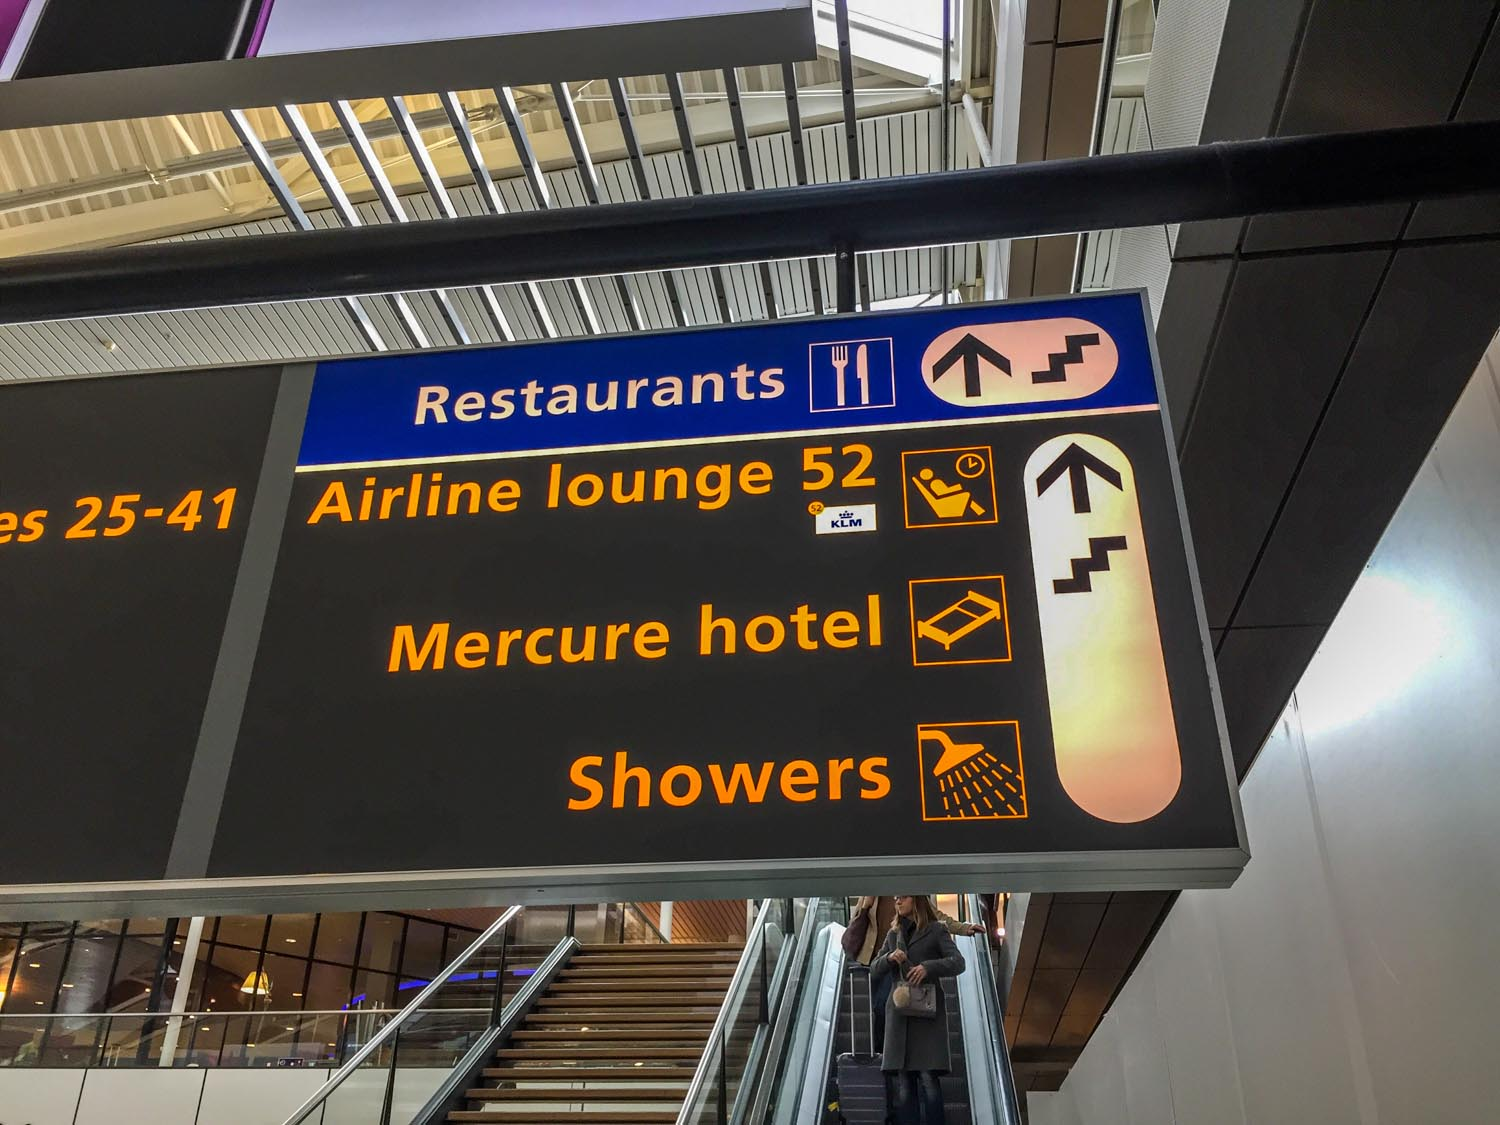 Sign directing you to KLM crown Lounge 52